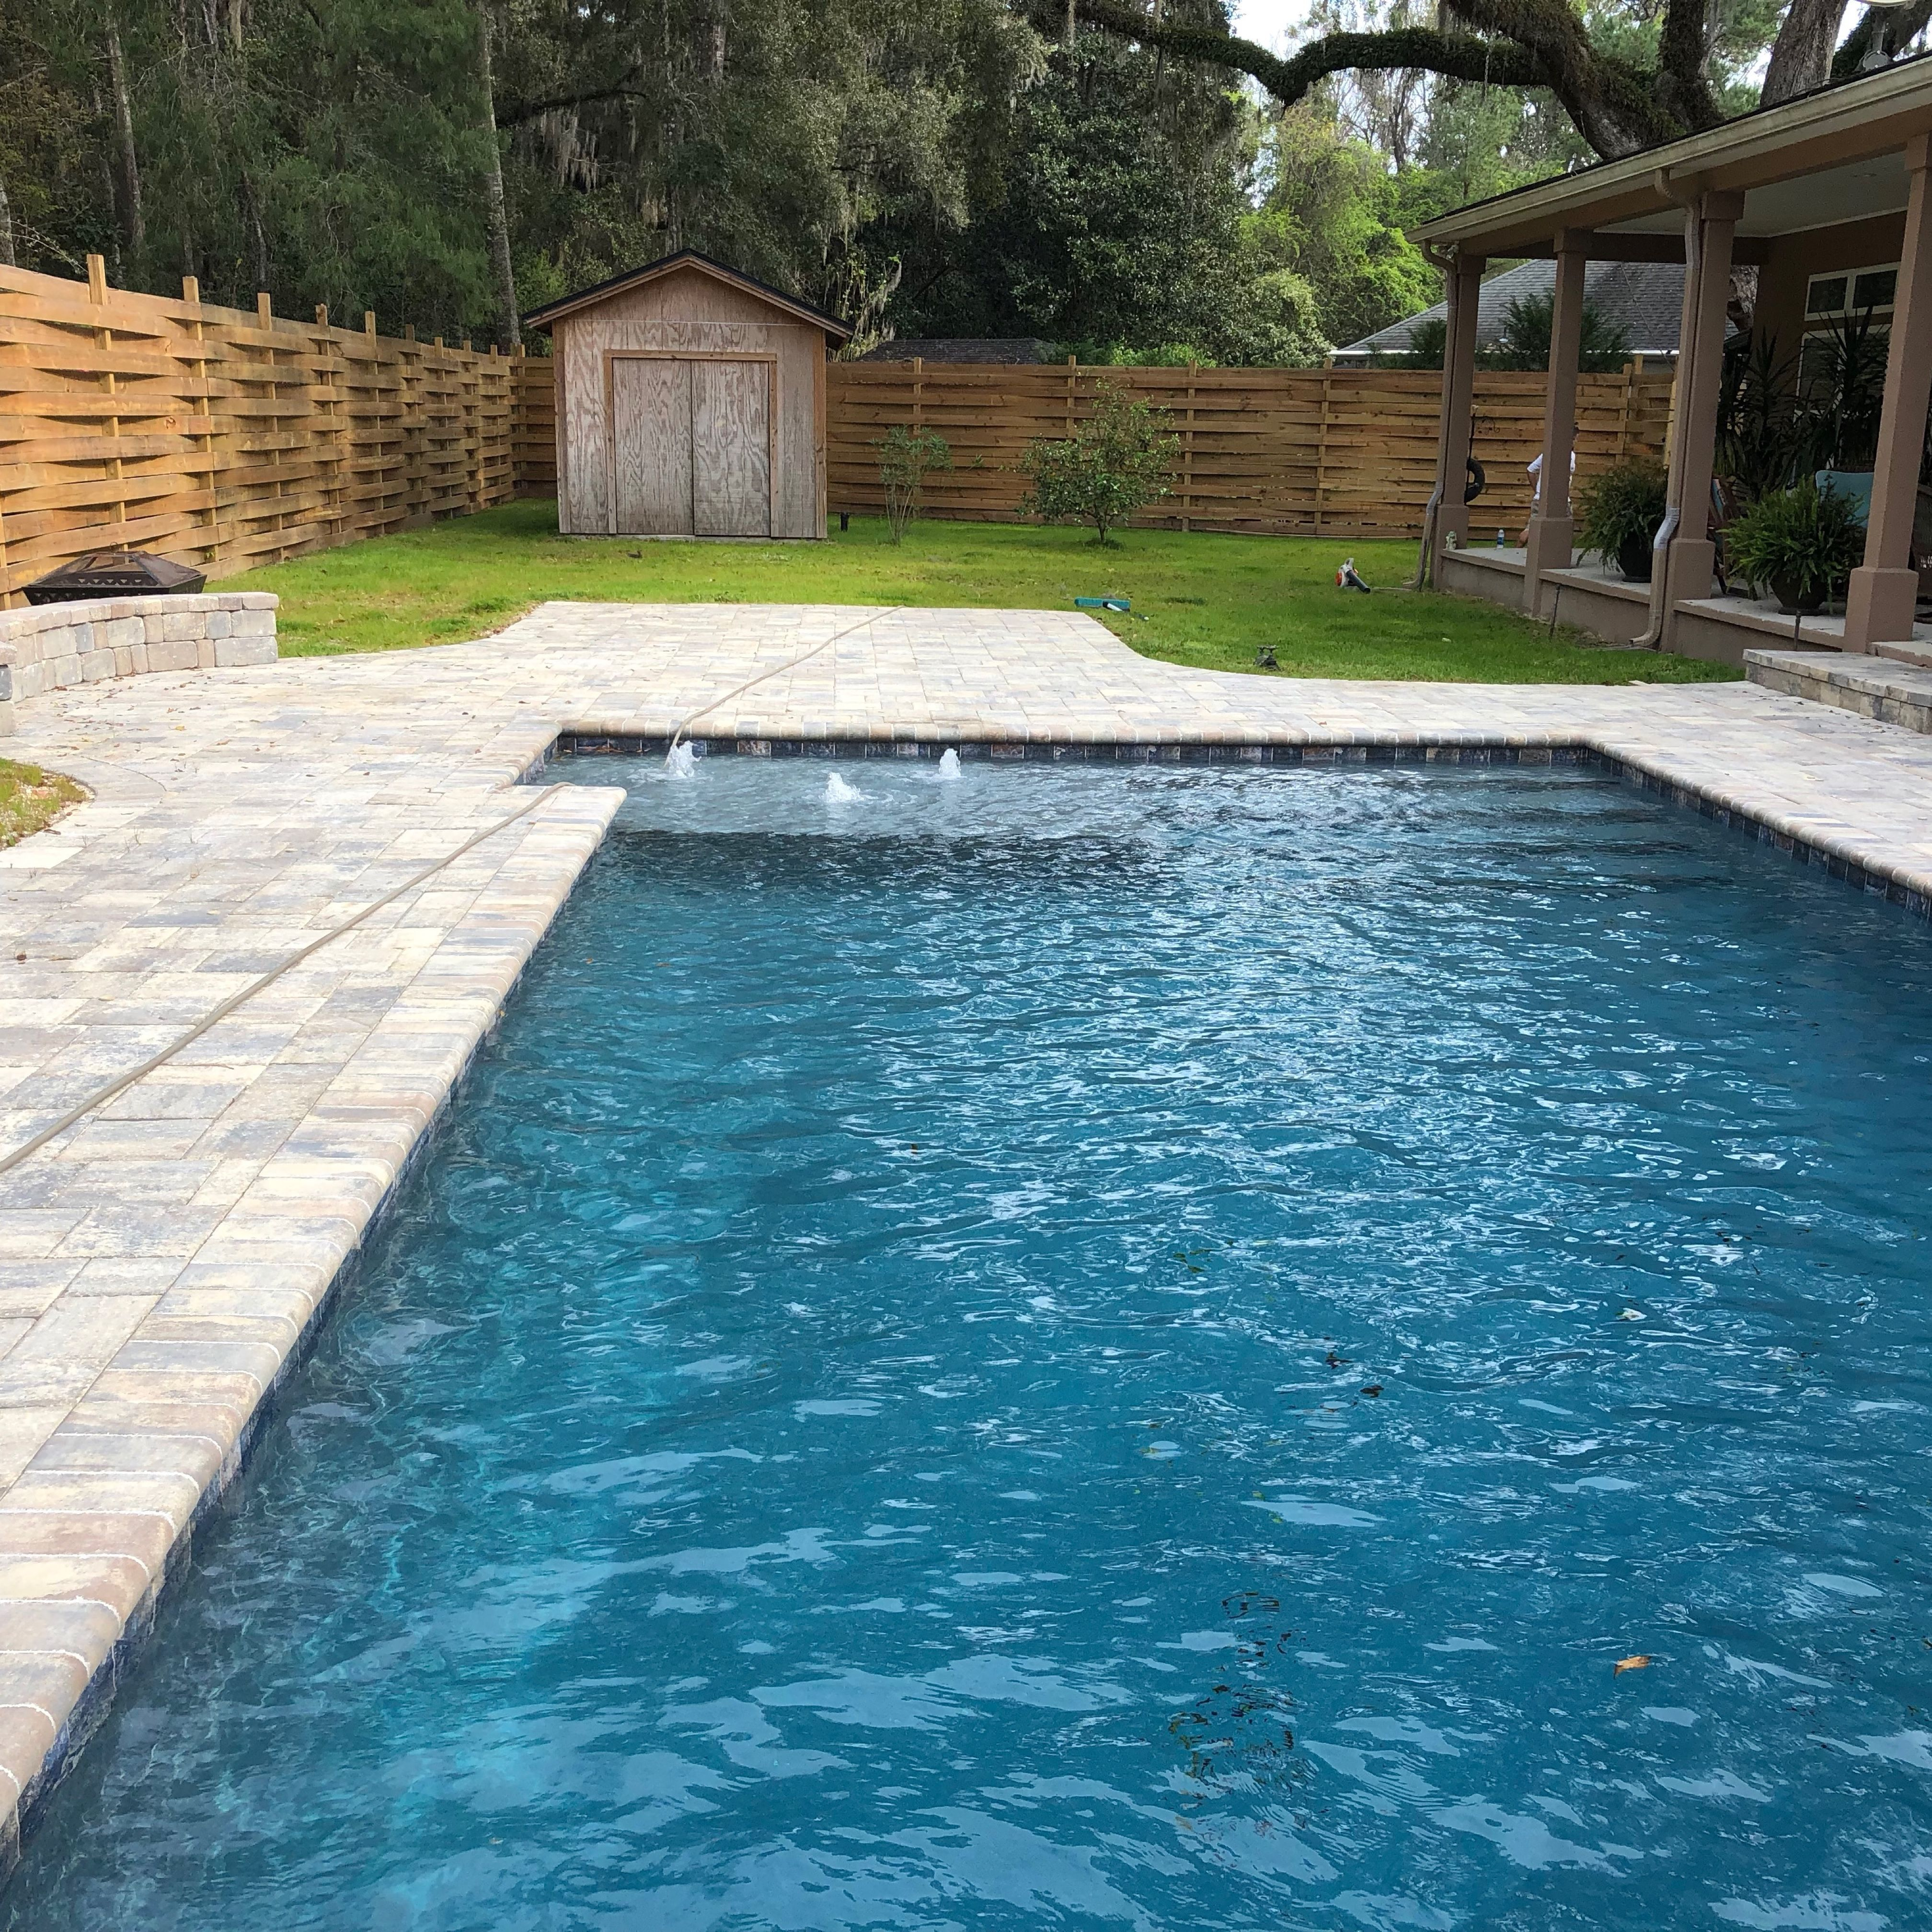 Beautifying Outdoor living! We clean and seal interlocking